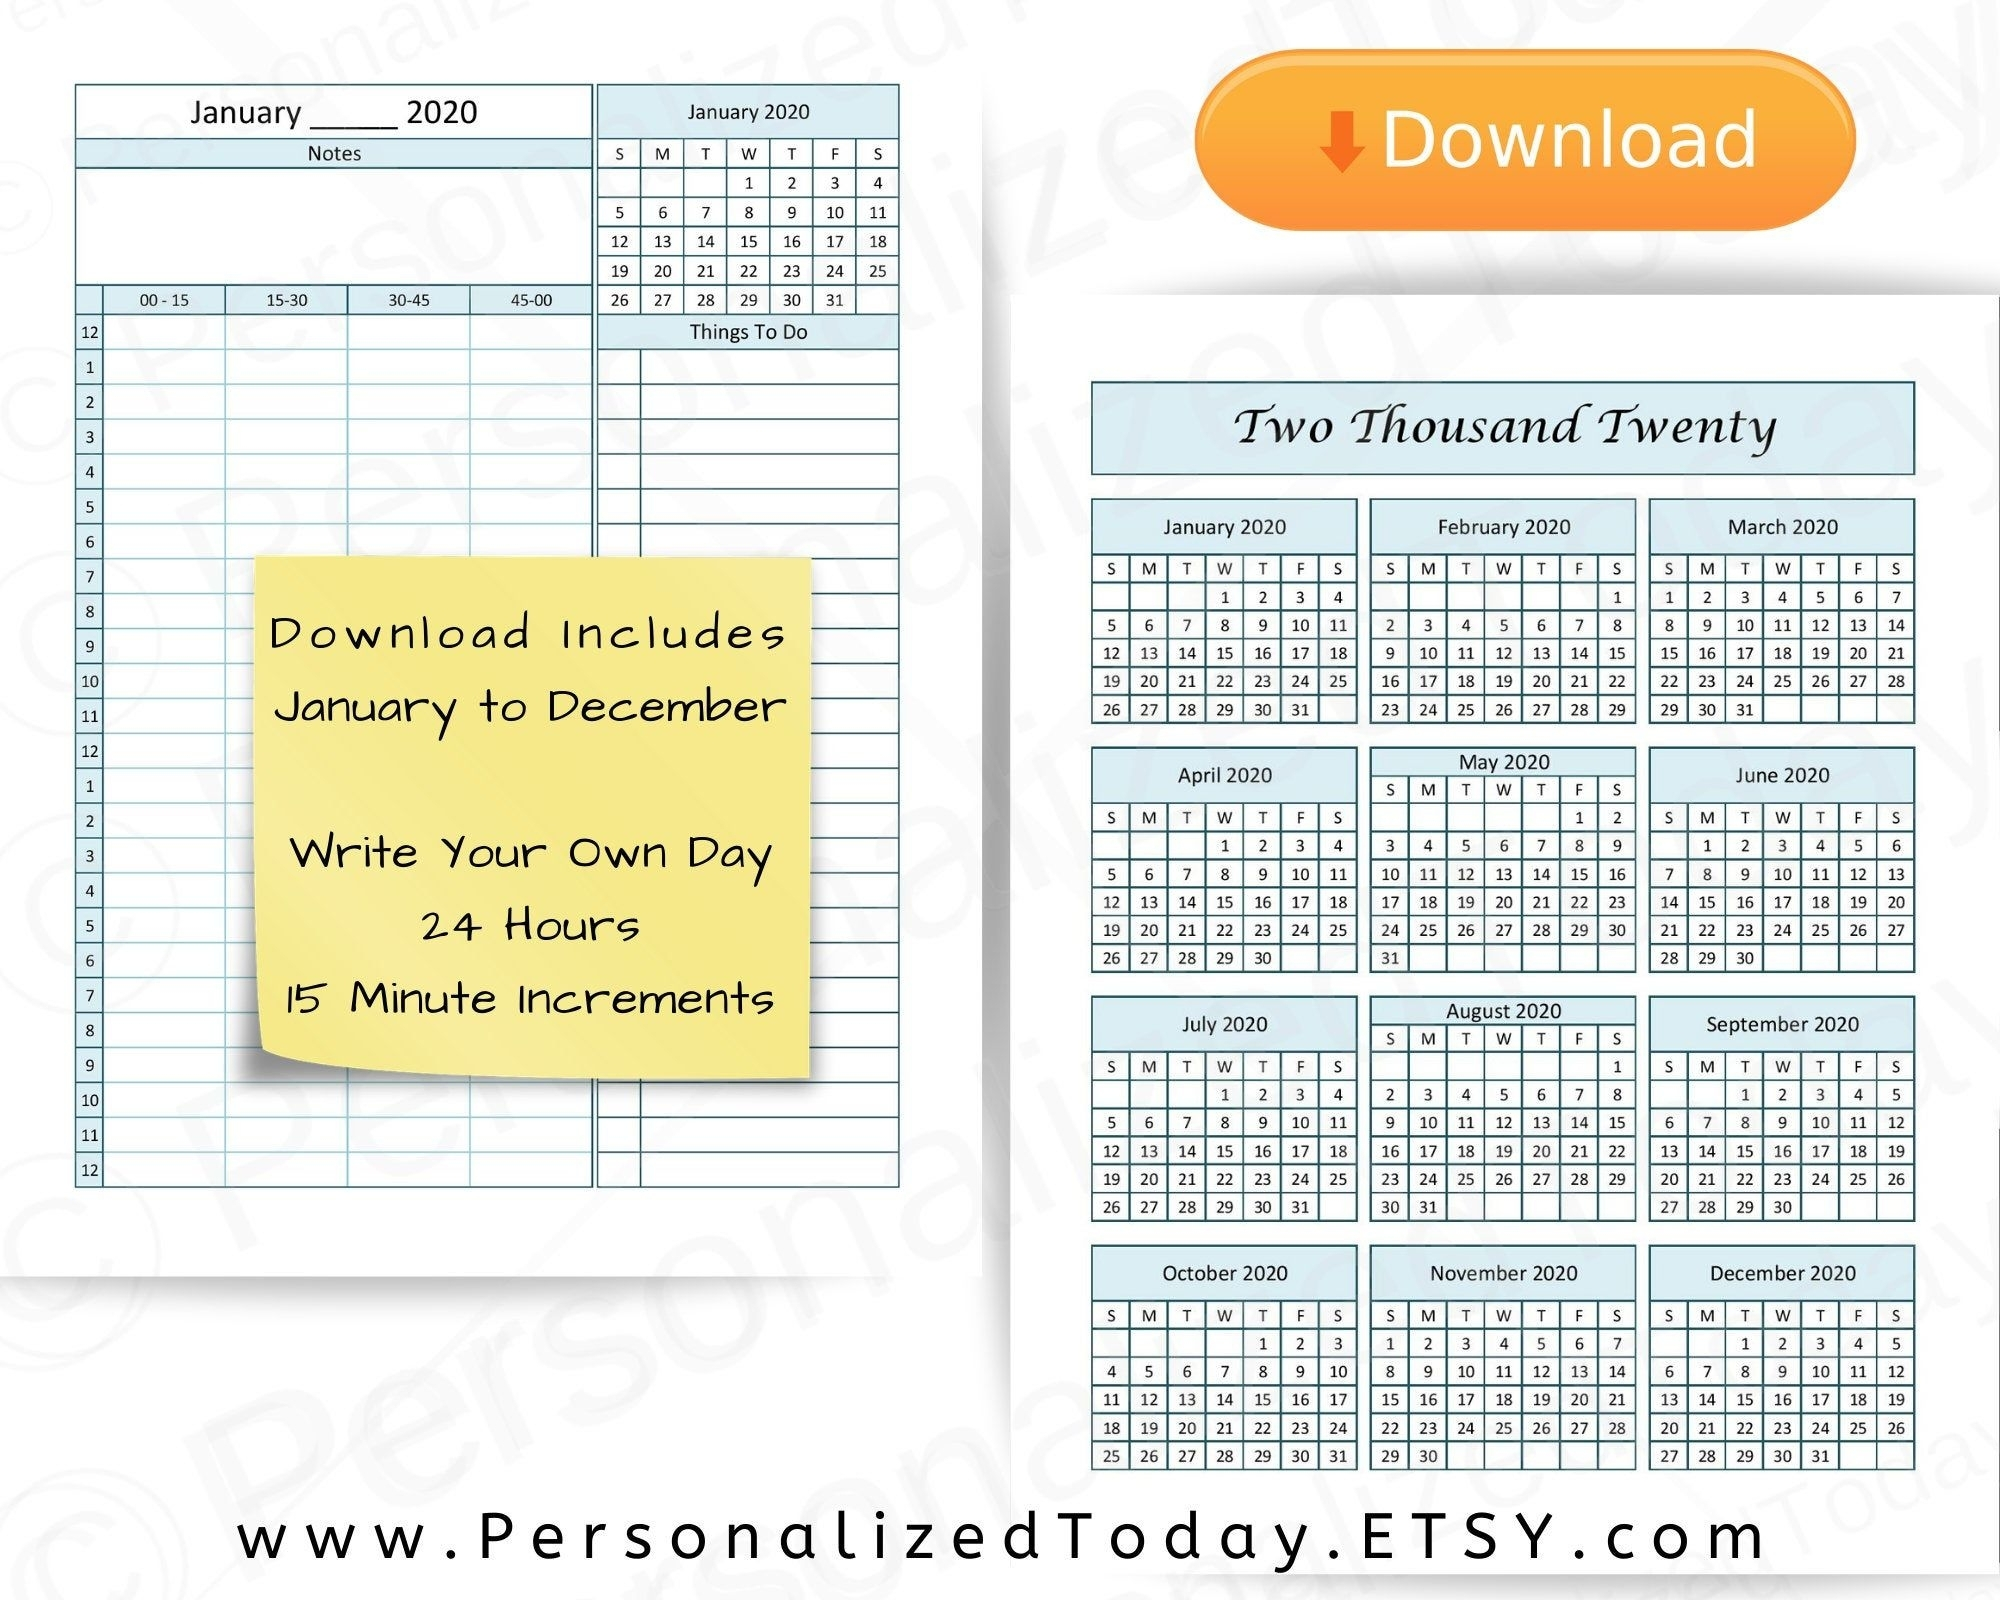 2020 Annual Calendar Printable With Notes Daily Pdf Digital